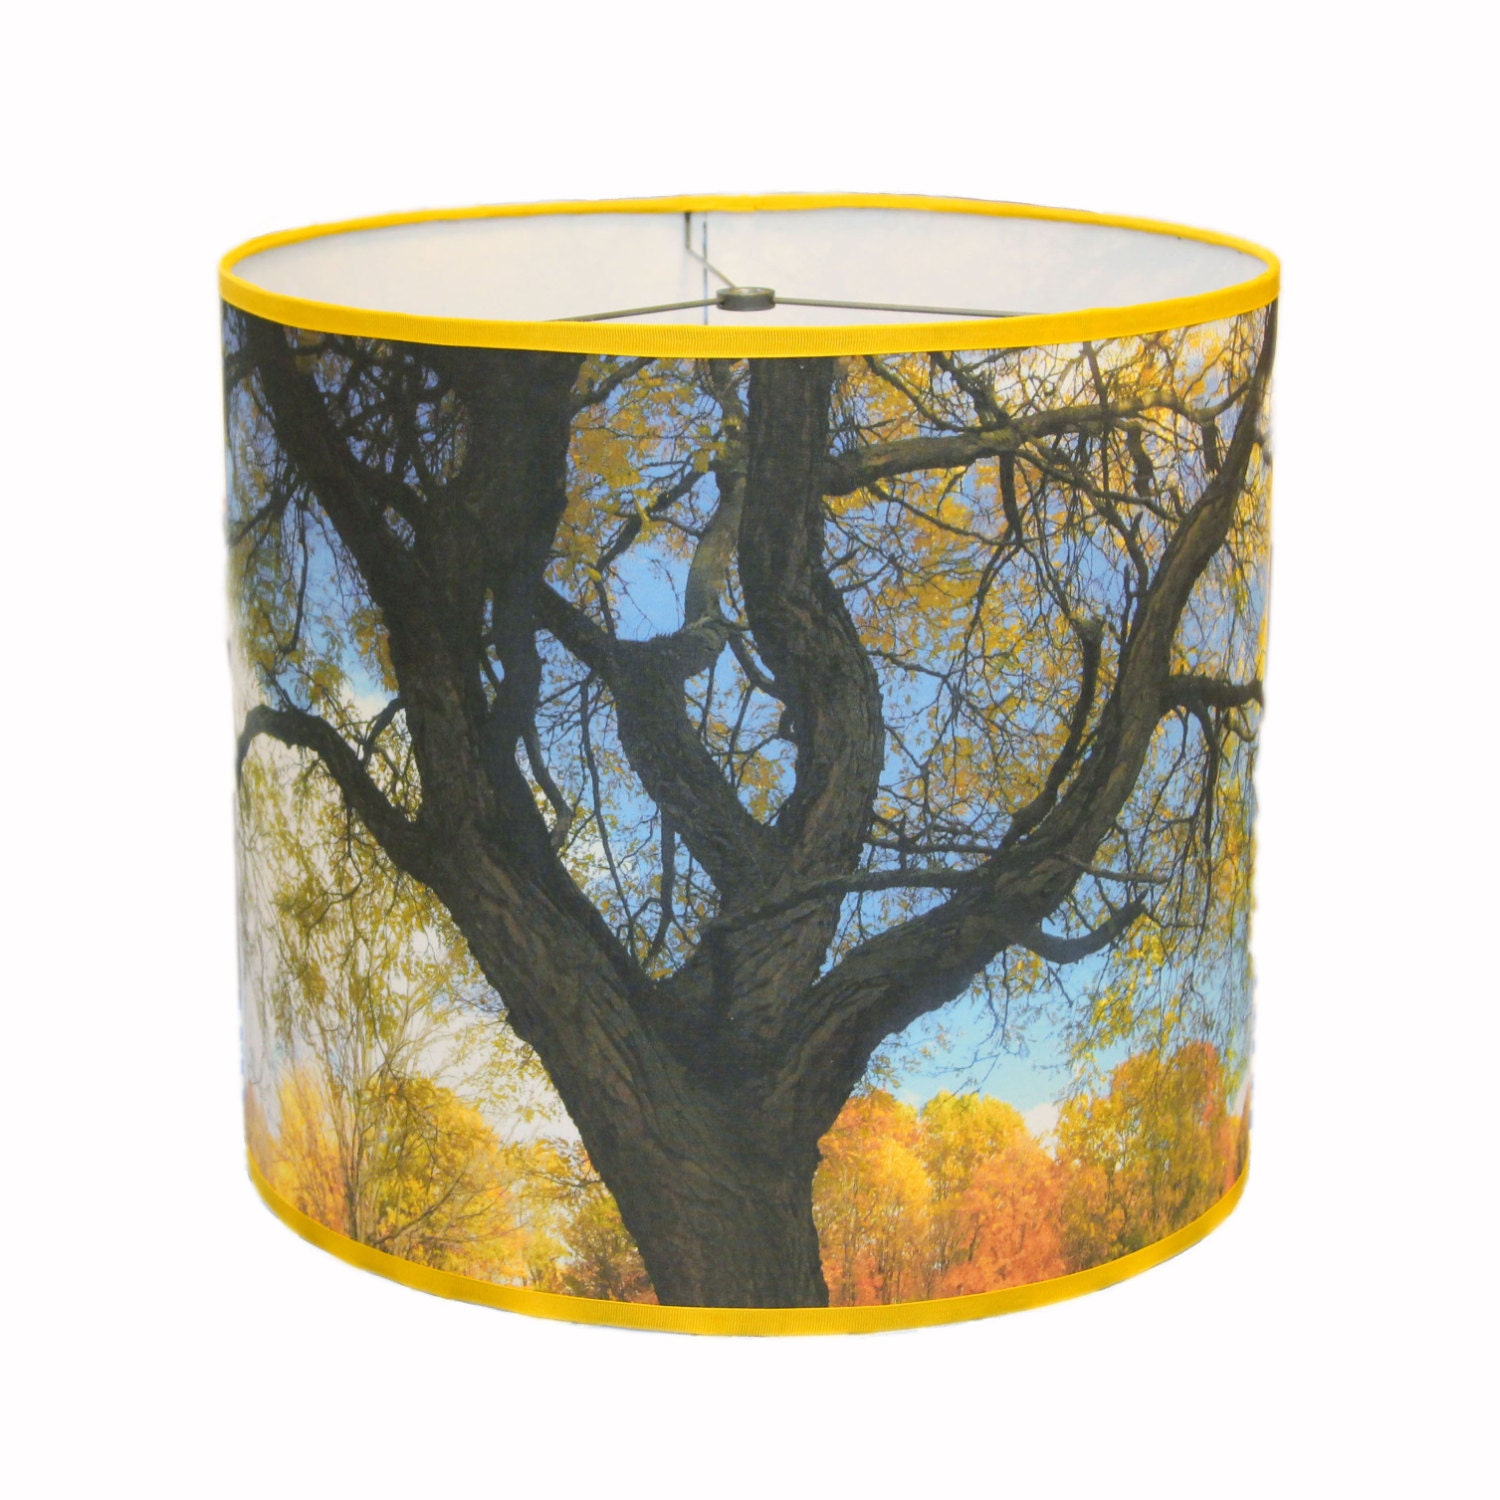 Large drum lamp shade drum shade lighting country lamp shade for Wide drum lamp shade